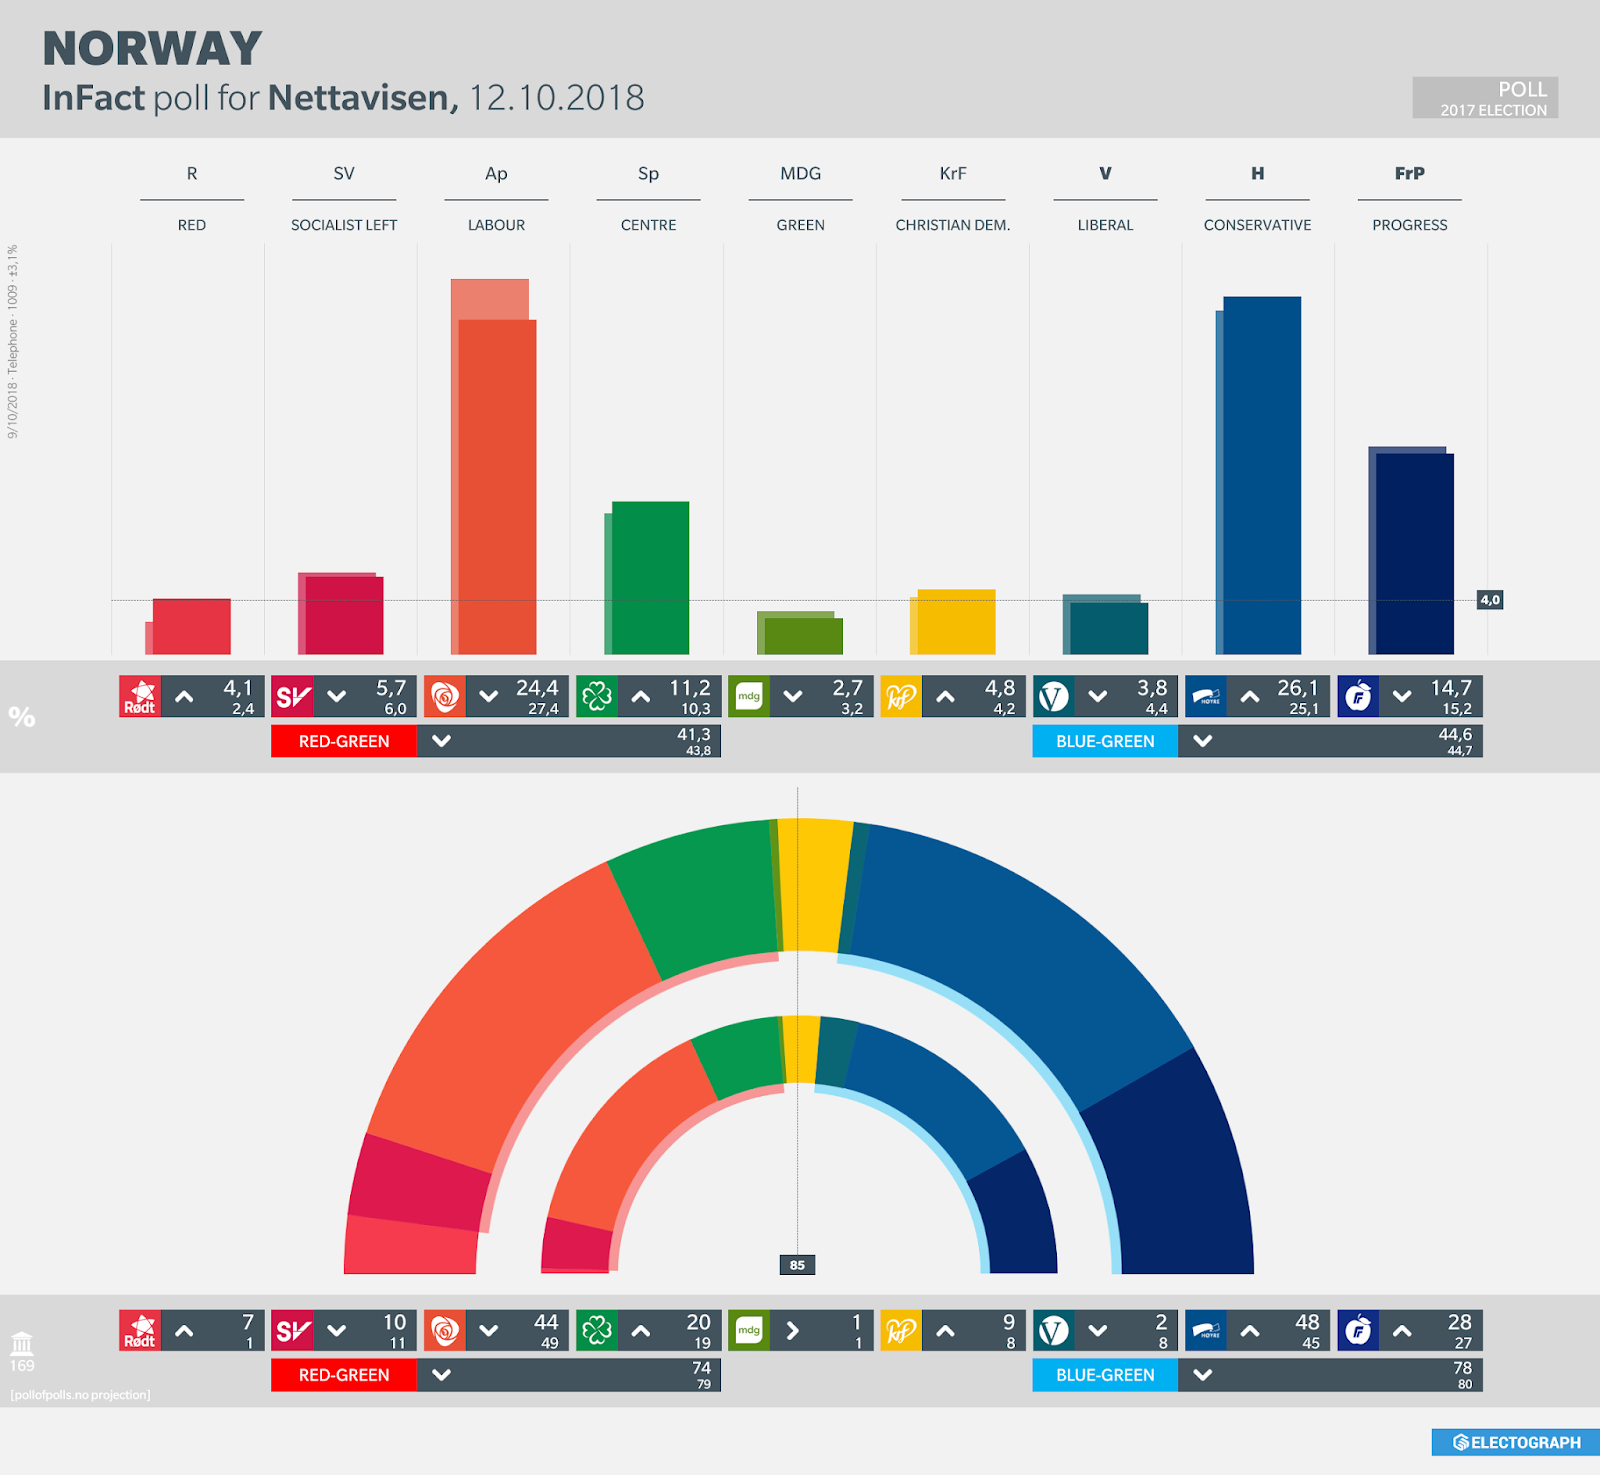 NORWAY: InFact poll chart for Nettavisen, October 2018